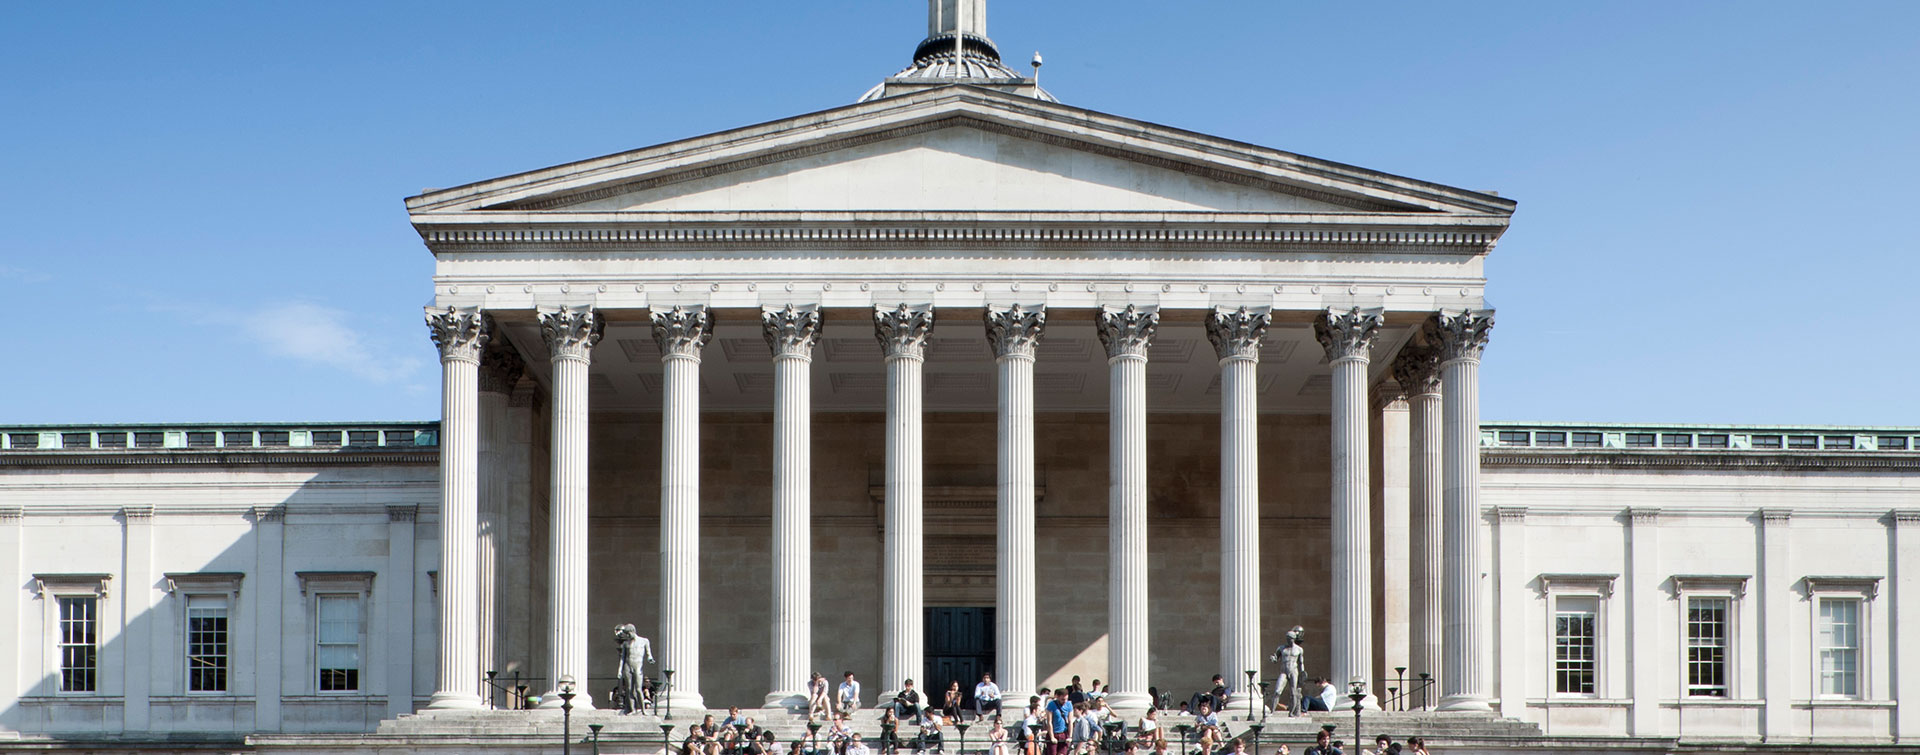 UCL Centre for Languages & International Education